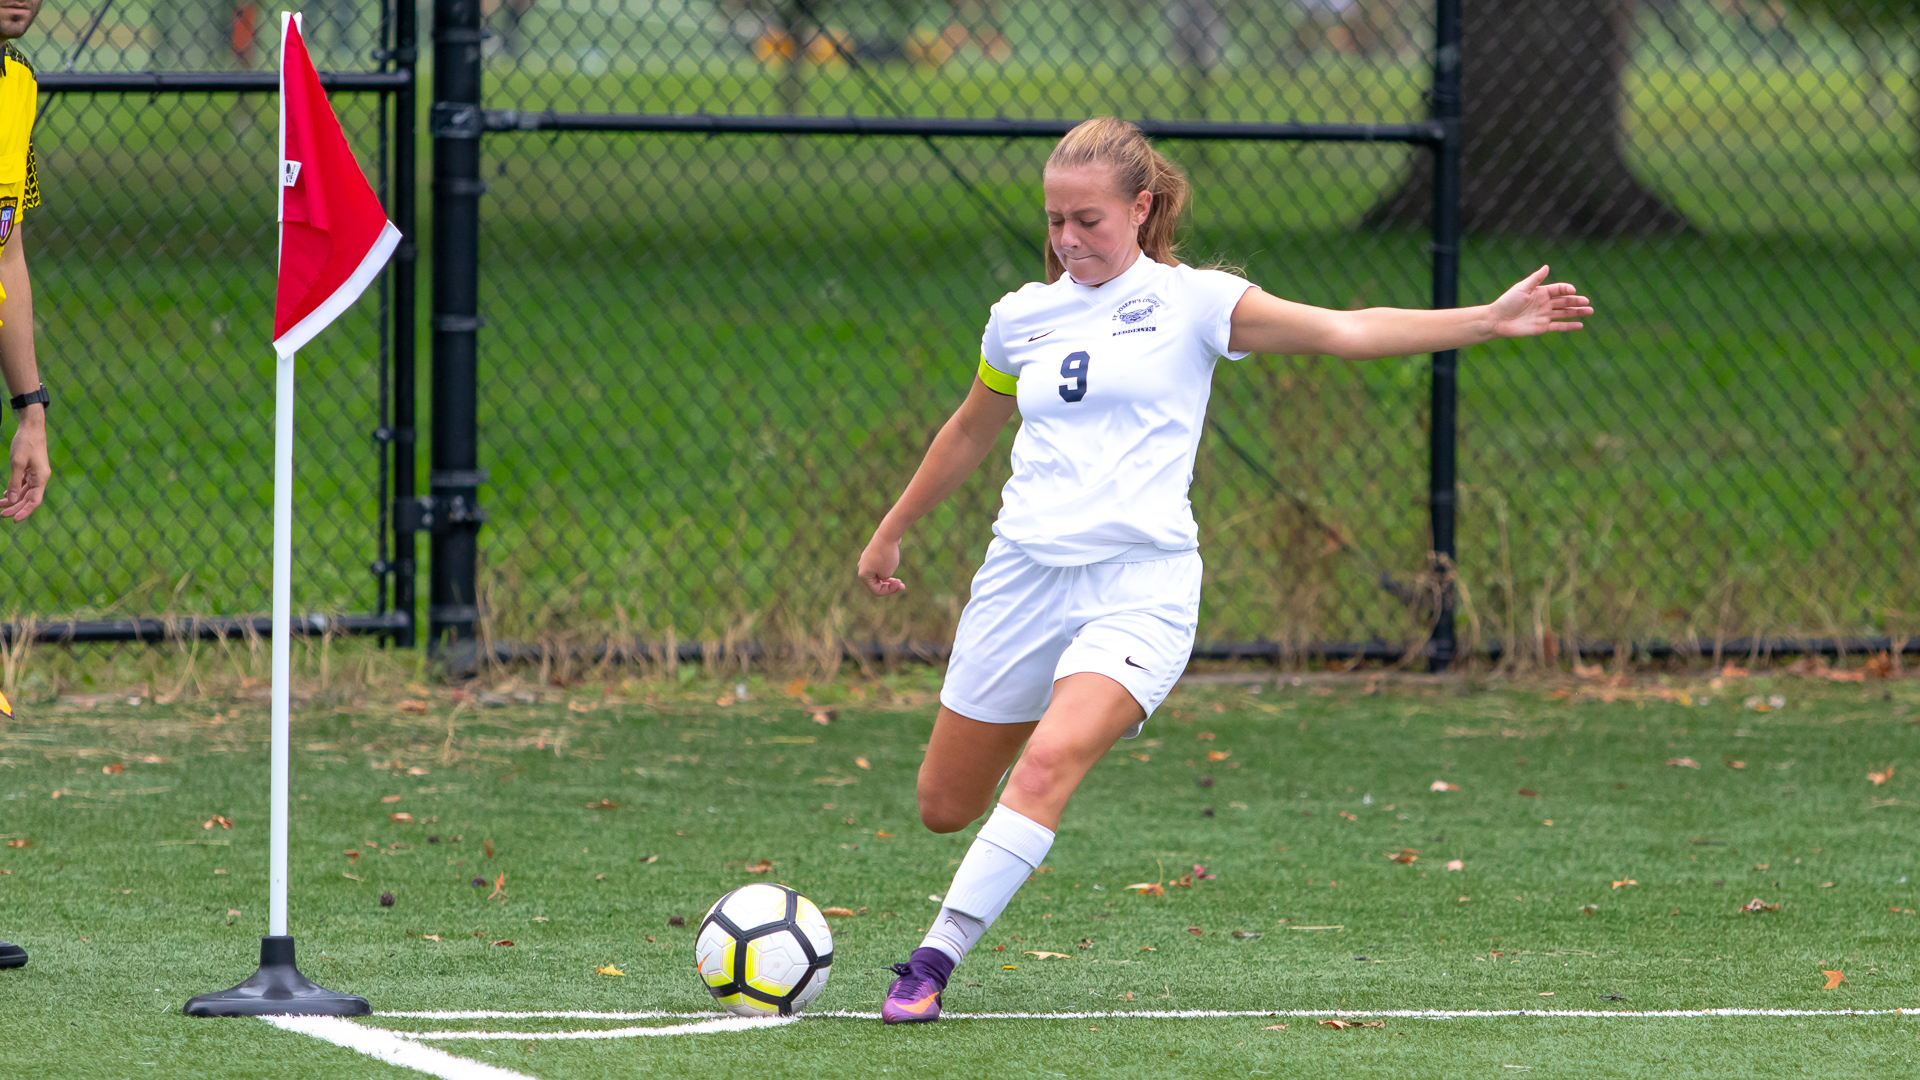 Sequeira's Brace Lifts Women's Soccer to Huge Skyline Victory Over Mount Saint Vincent